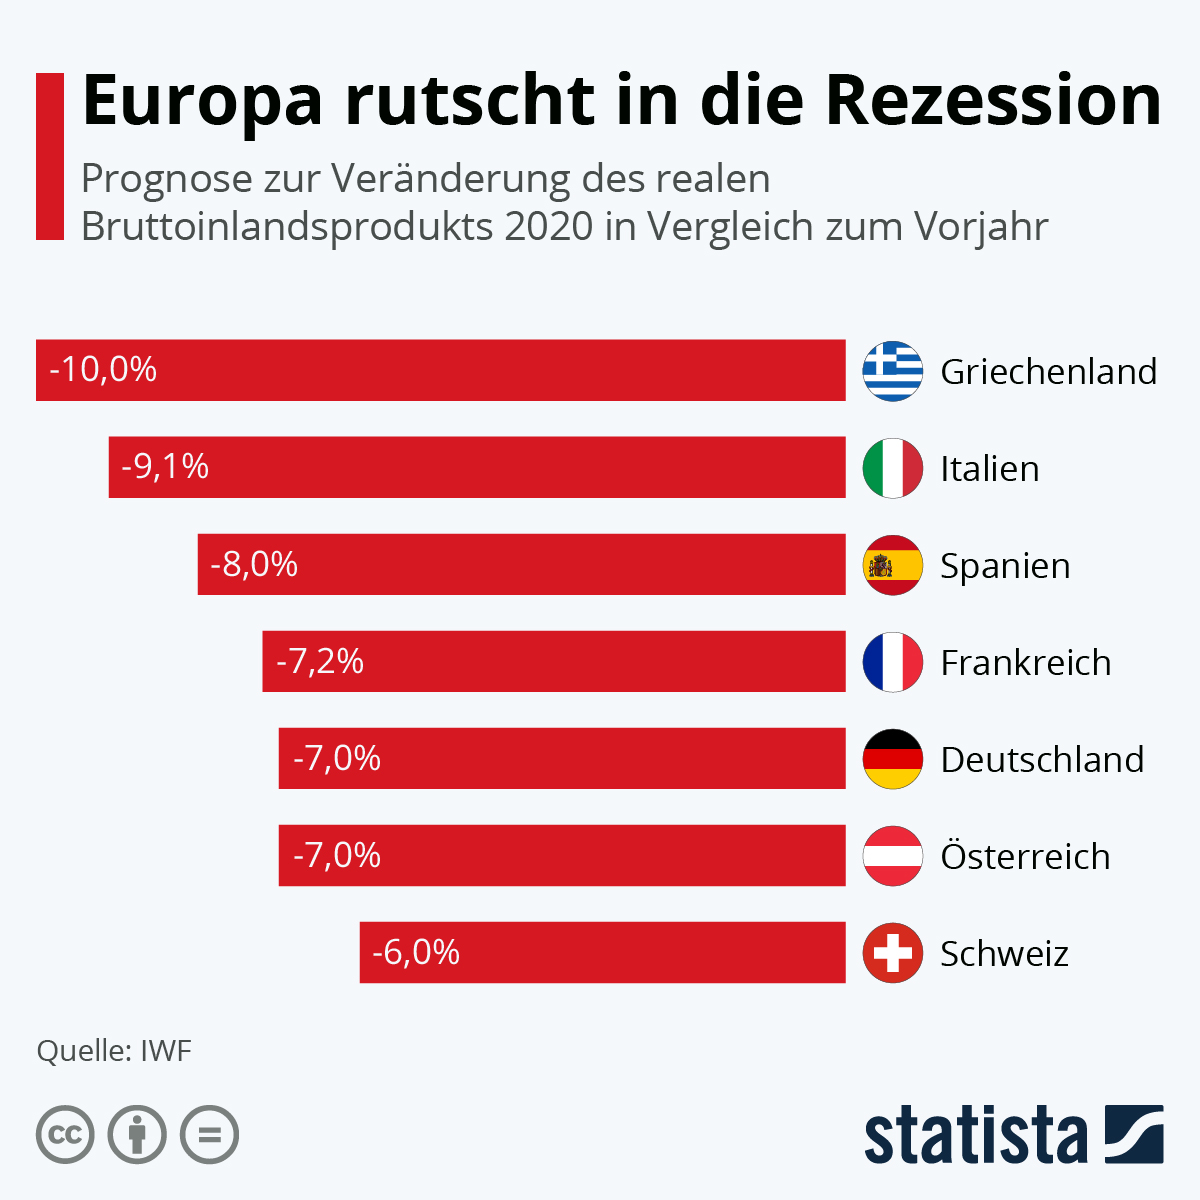 Europa rutscht in Rezession